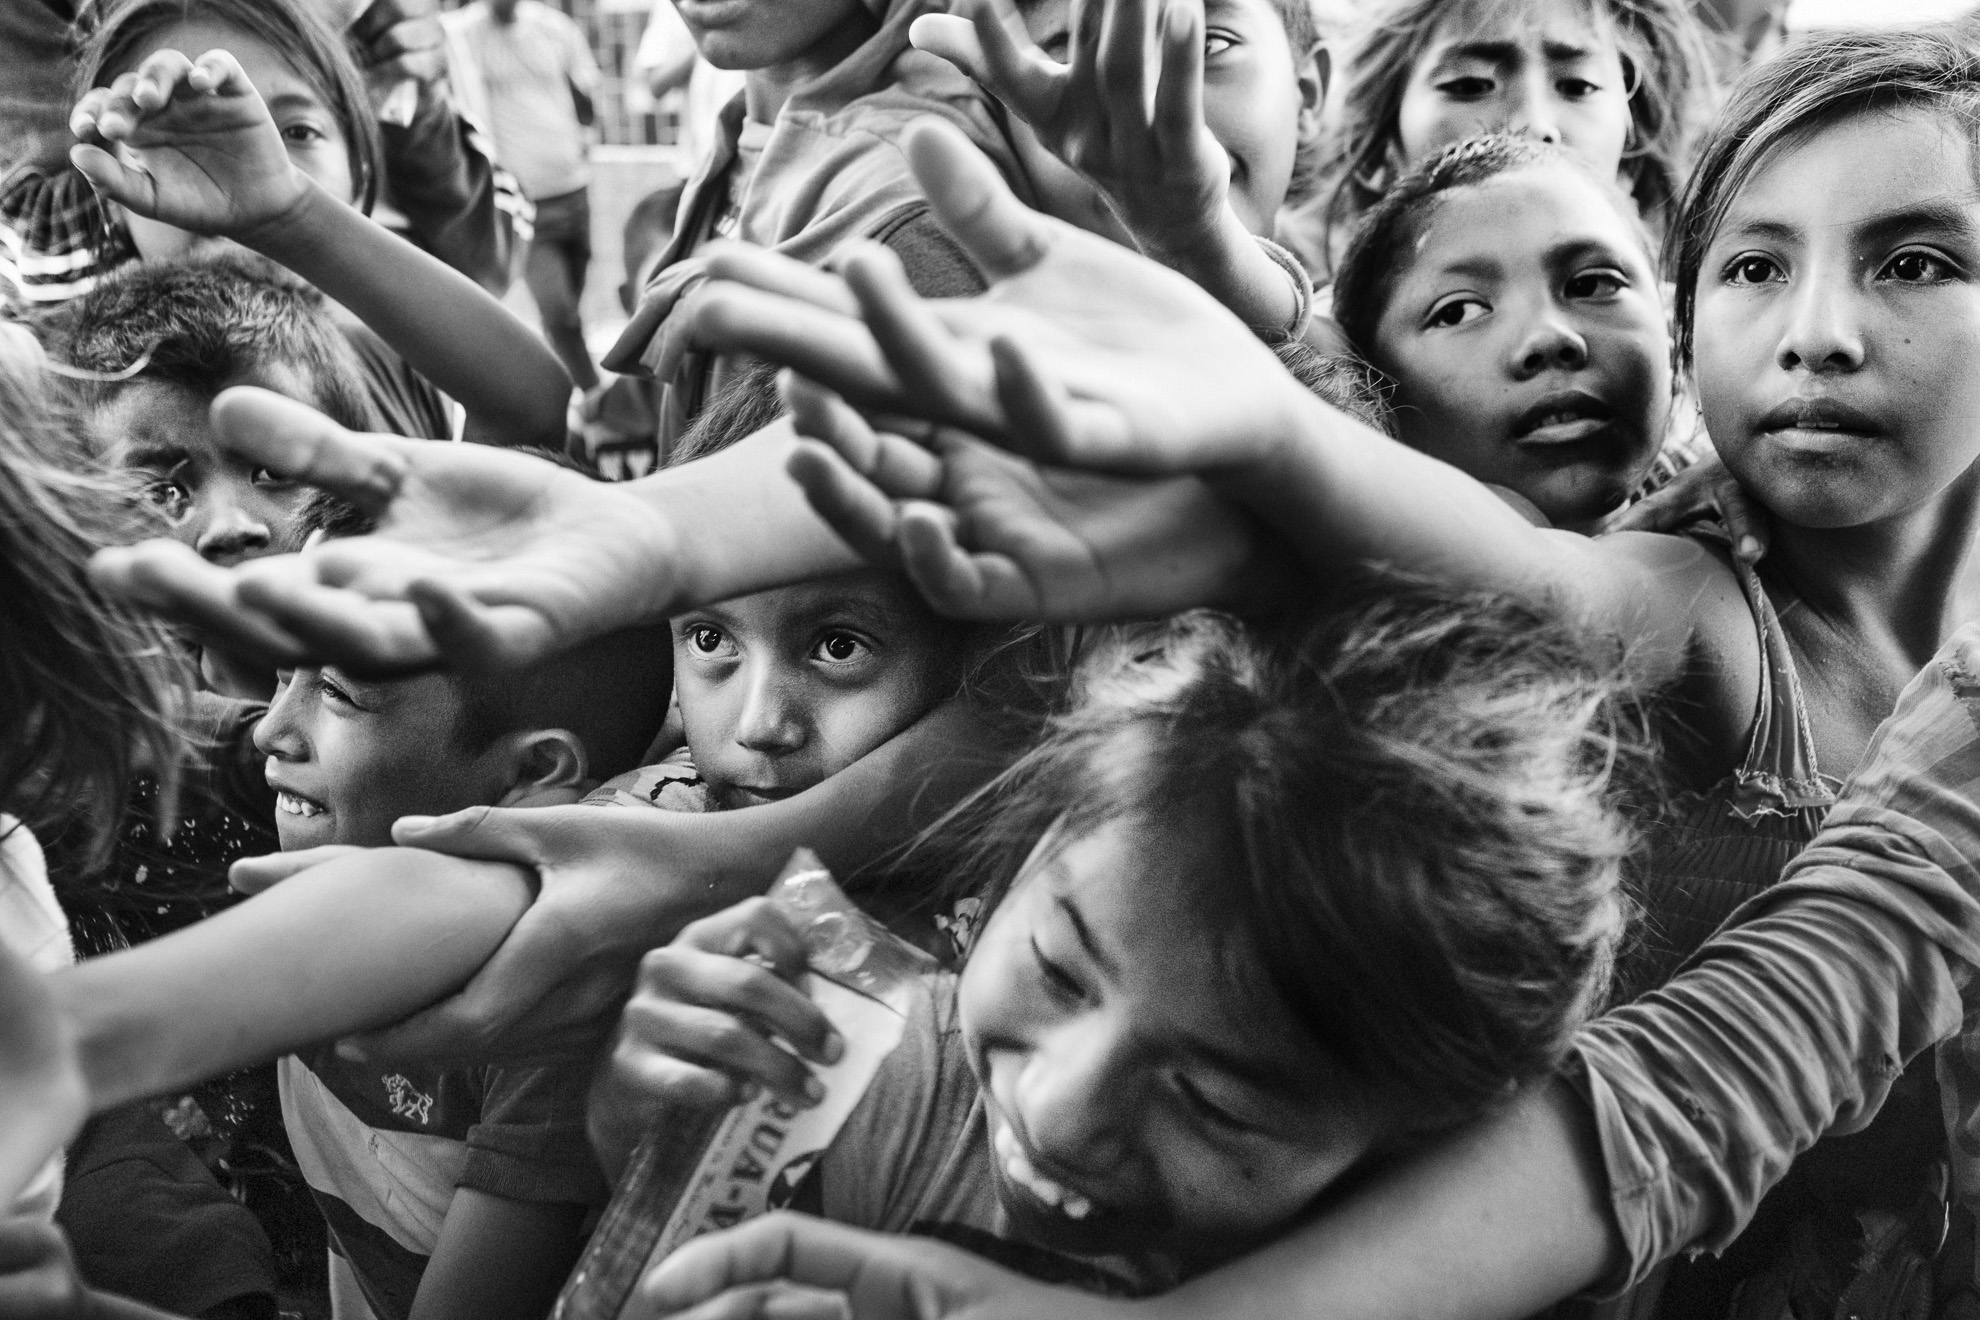 Children crowd at the door of a UNHCR attention center to receive donated water at the border town of Paraguachón, Colombia. Charity organizations and NGOs help supply people with medical attention, water, and food. However, the magnitude of the migration is bigger than the international agencies' capability to respond to it. Many end up in informal settlements or living on the streets.